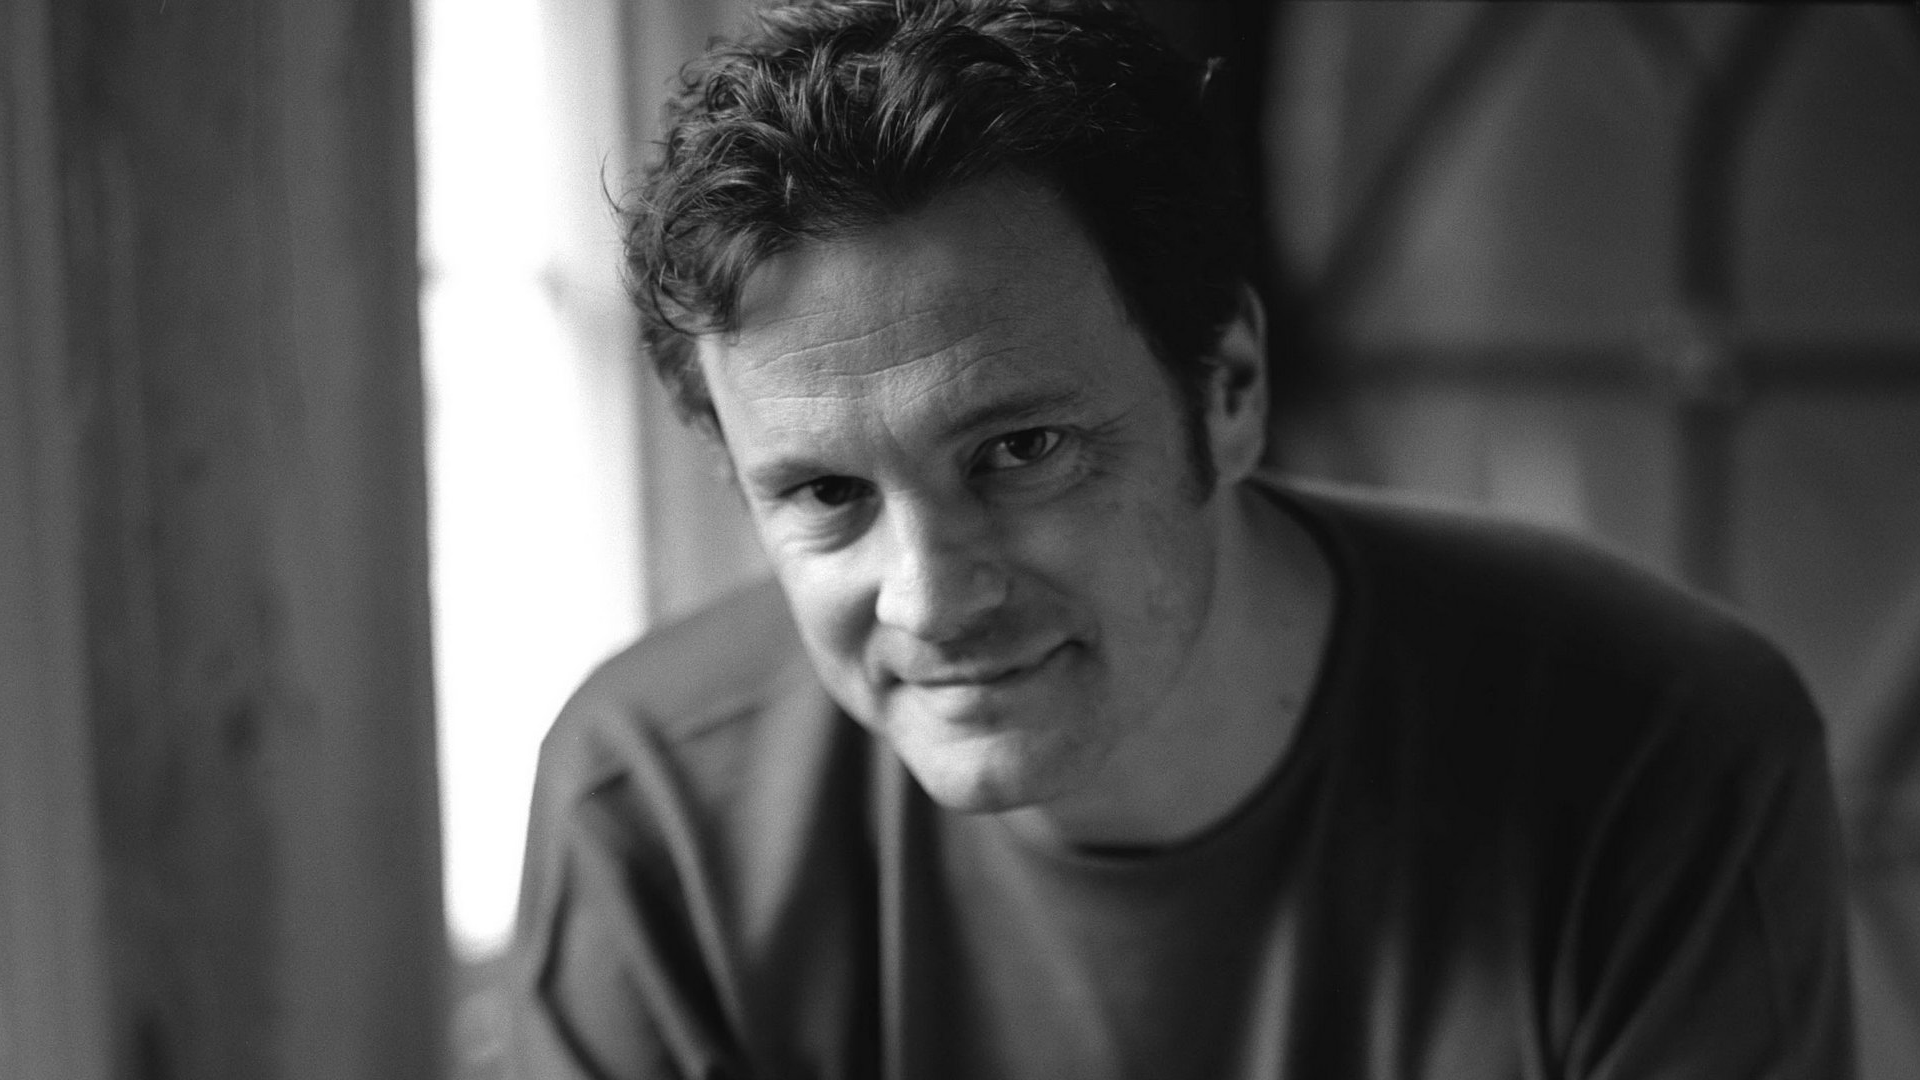 1920x1080 - Colin Firth Wallpapers 3